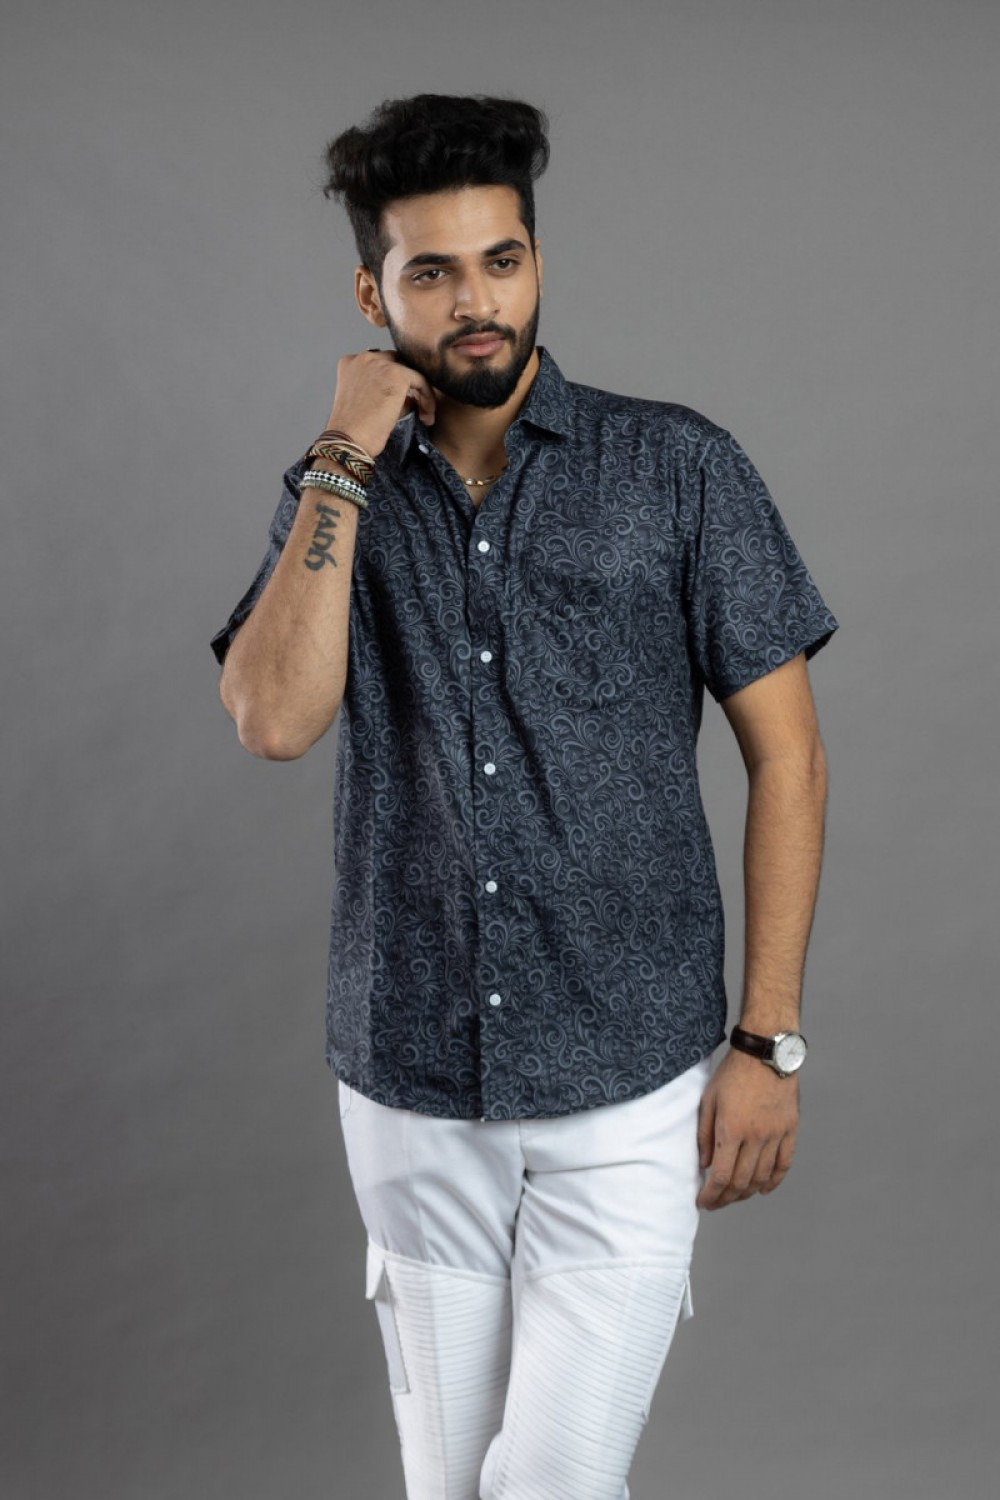 Mind Blowing Black and Grey Short Sleeves Faded Shirt